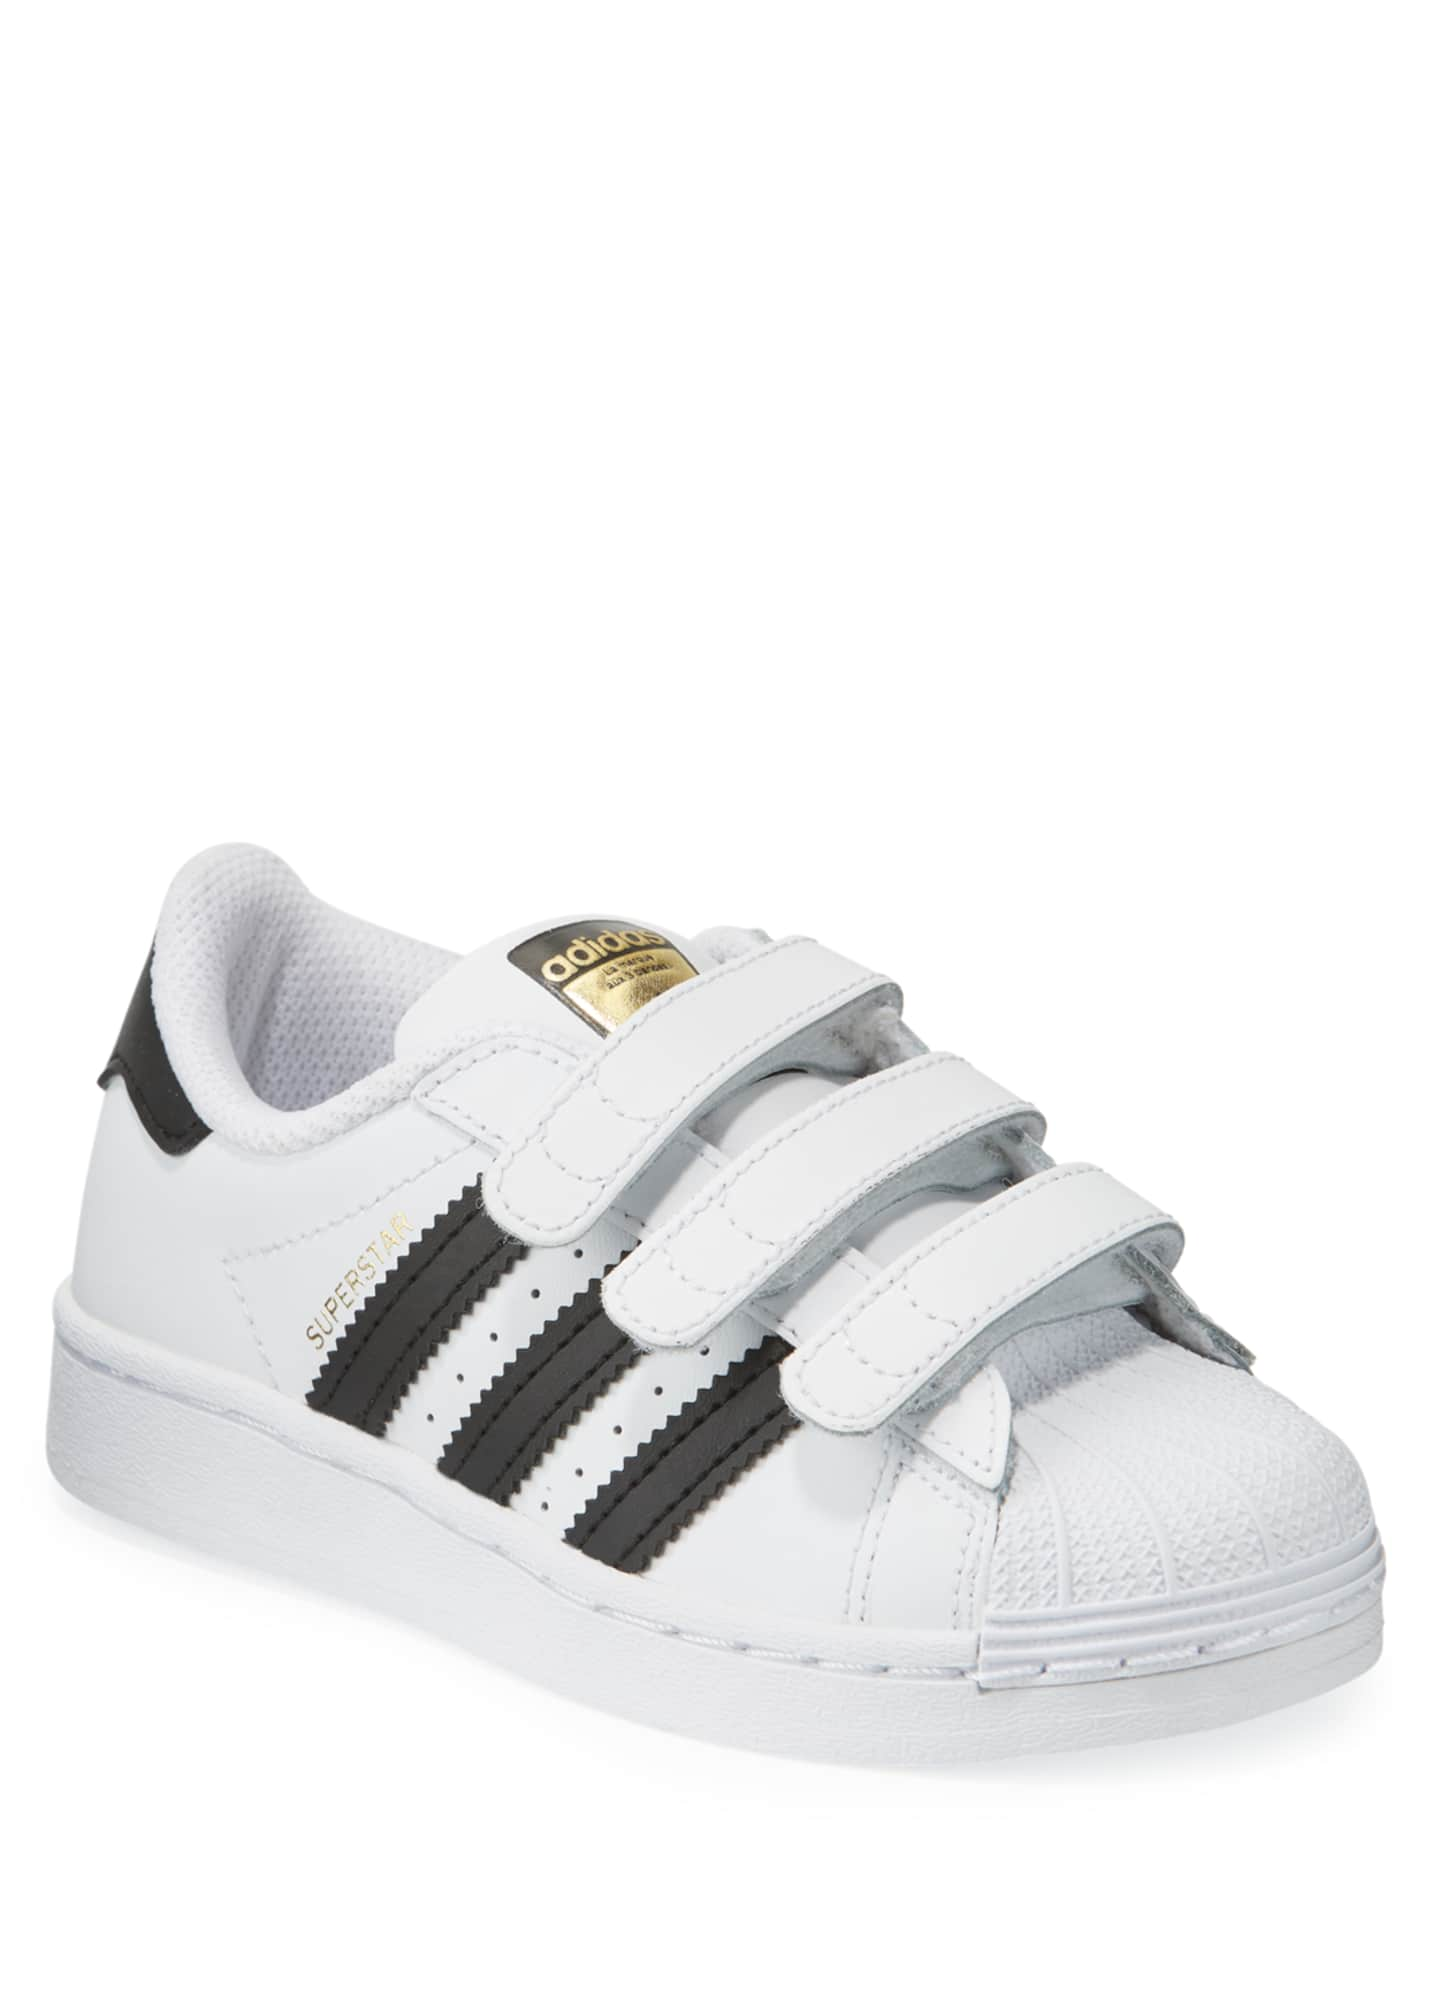 Image 1 of 4: Superstar Classic Sneakers, Toddler/Kids